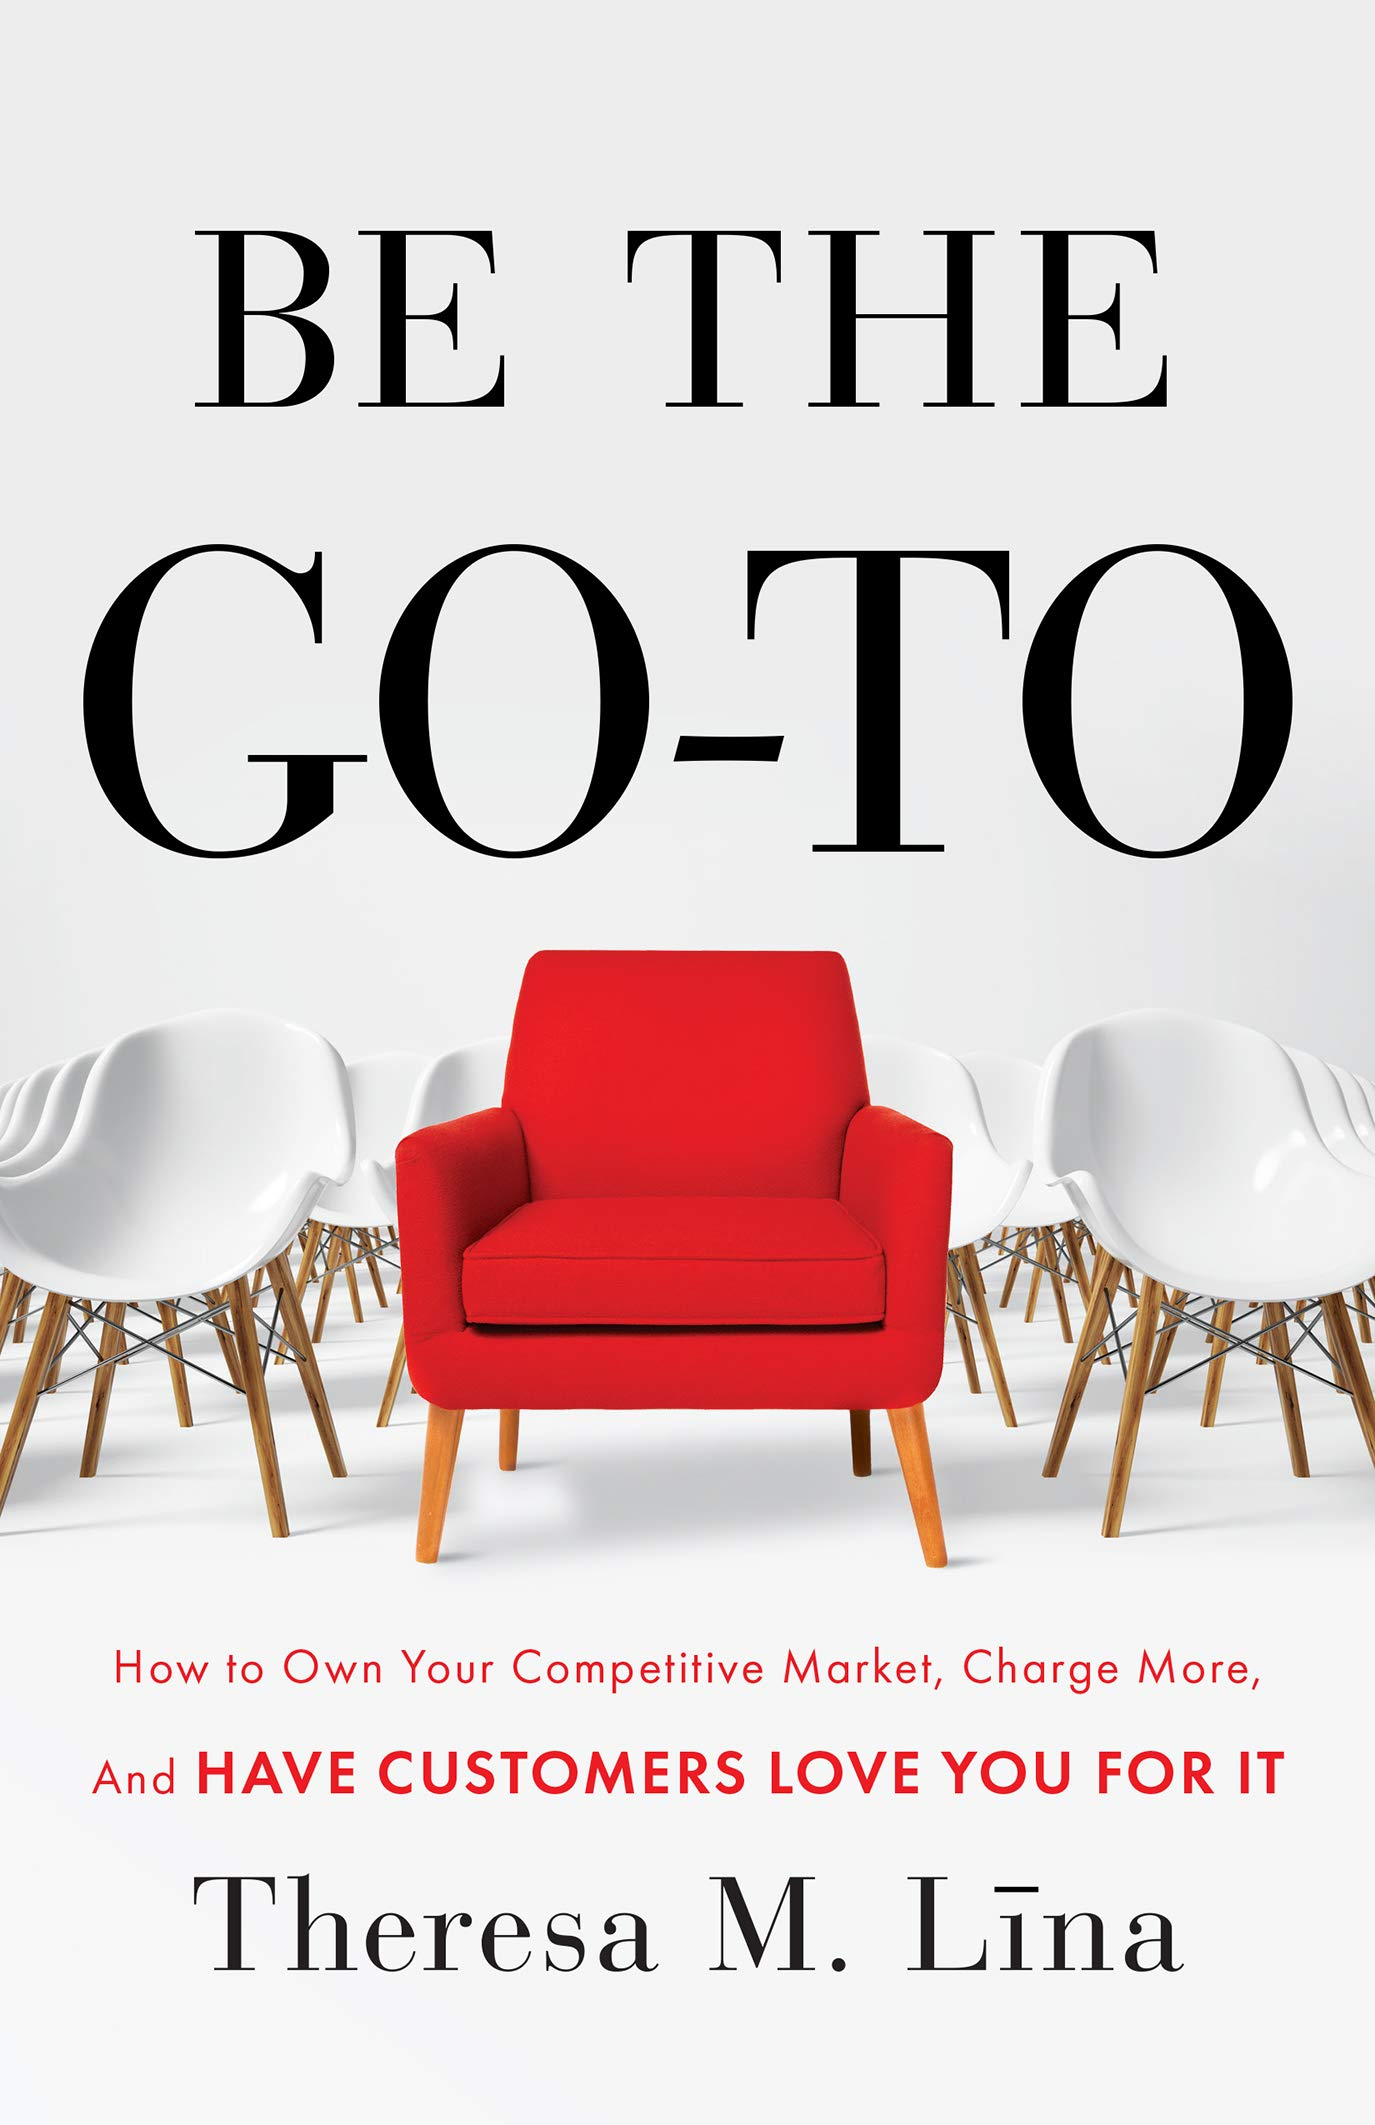 Image OfBe The Go-To: How To Own Your Competitive Market, Charge More, And Have Customers Love You For It